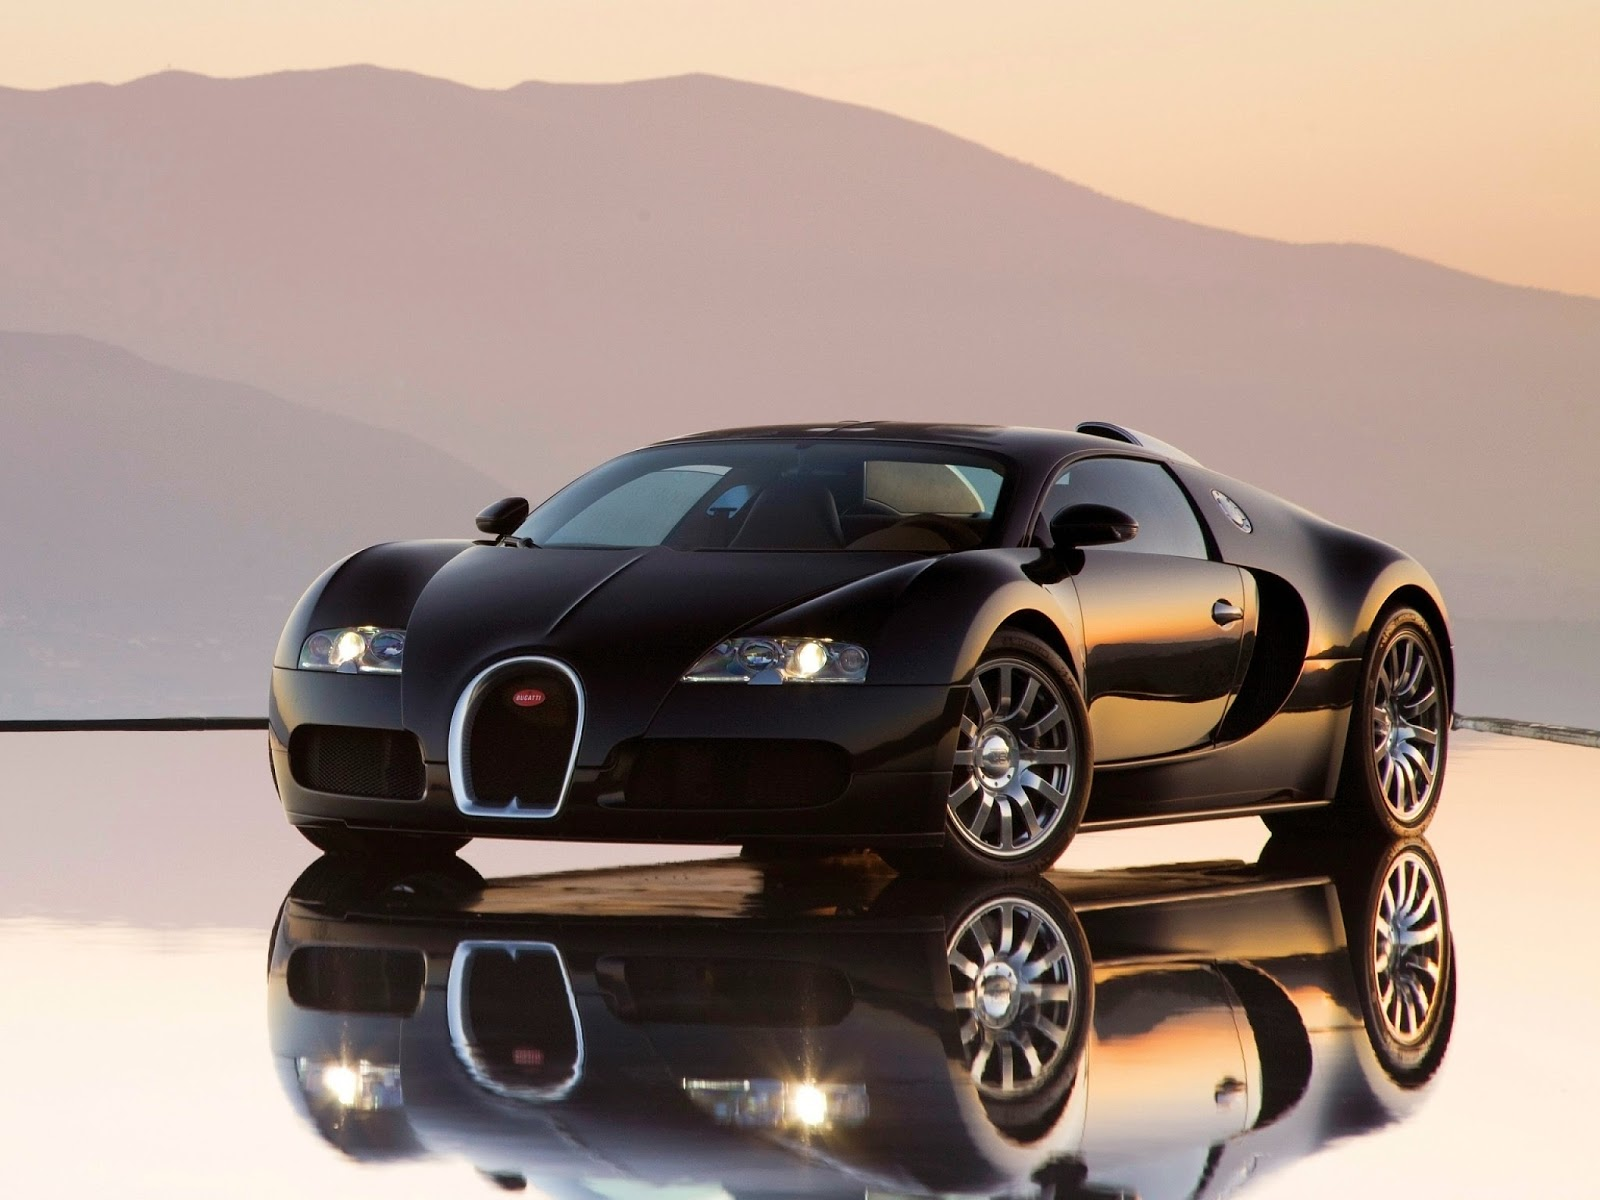 sport bugatti super diamond wallpaper pictures veyron